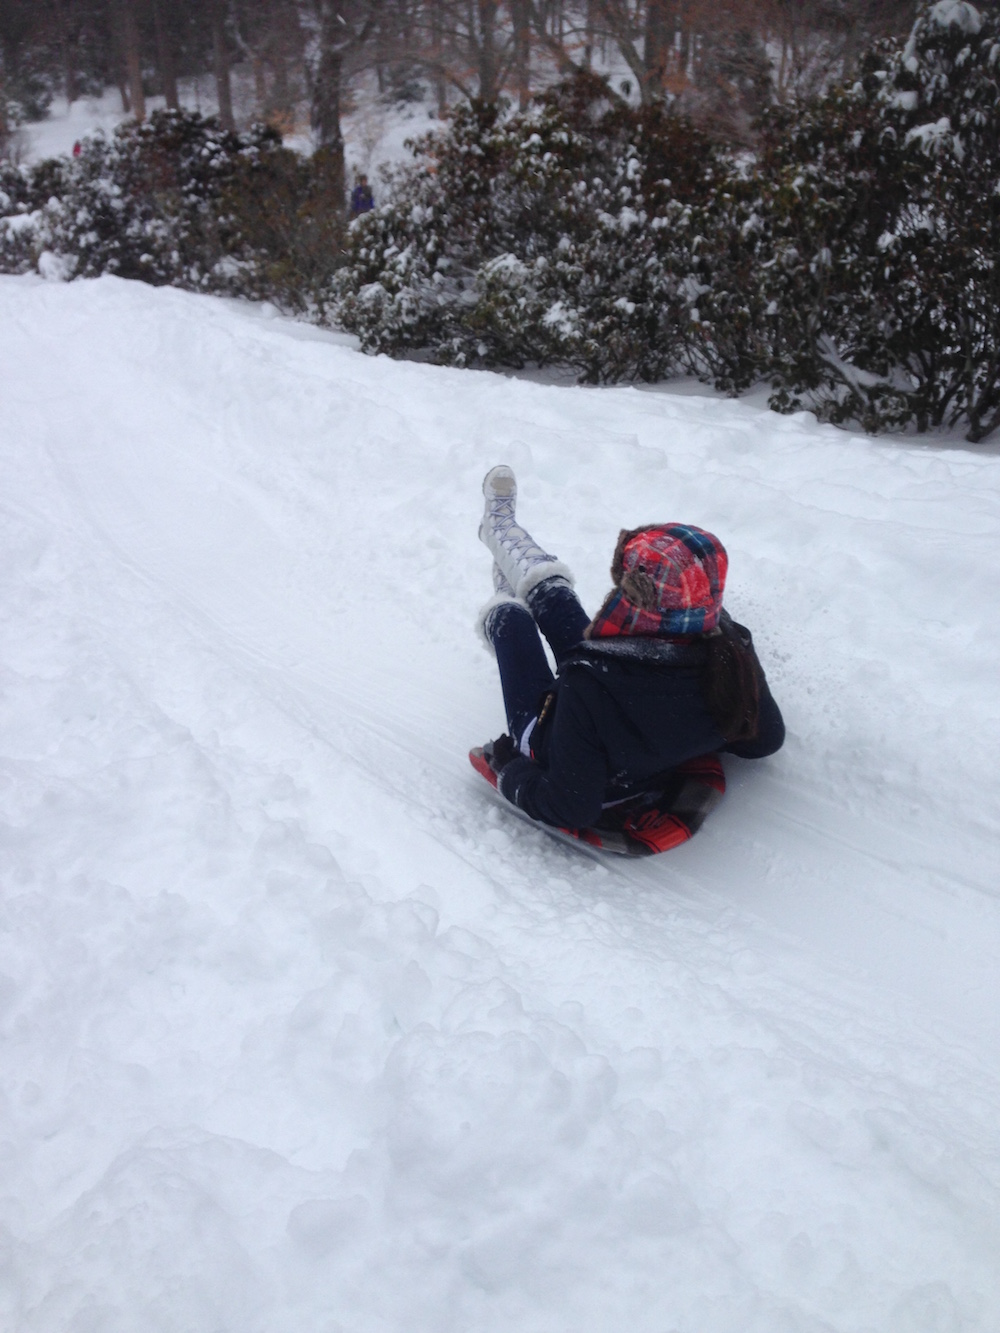 A student sleds down a hill in the snow